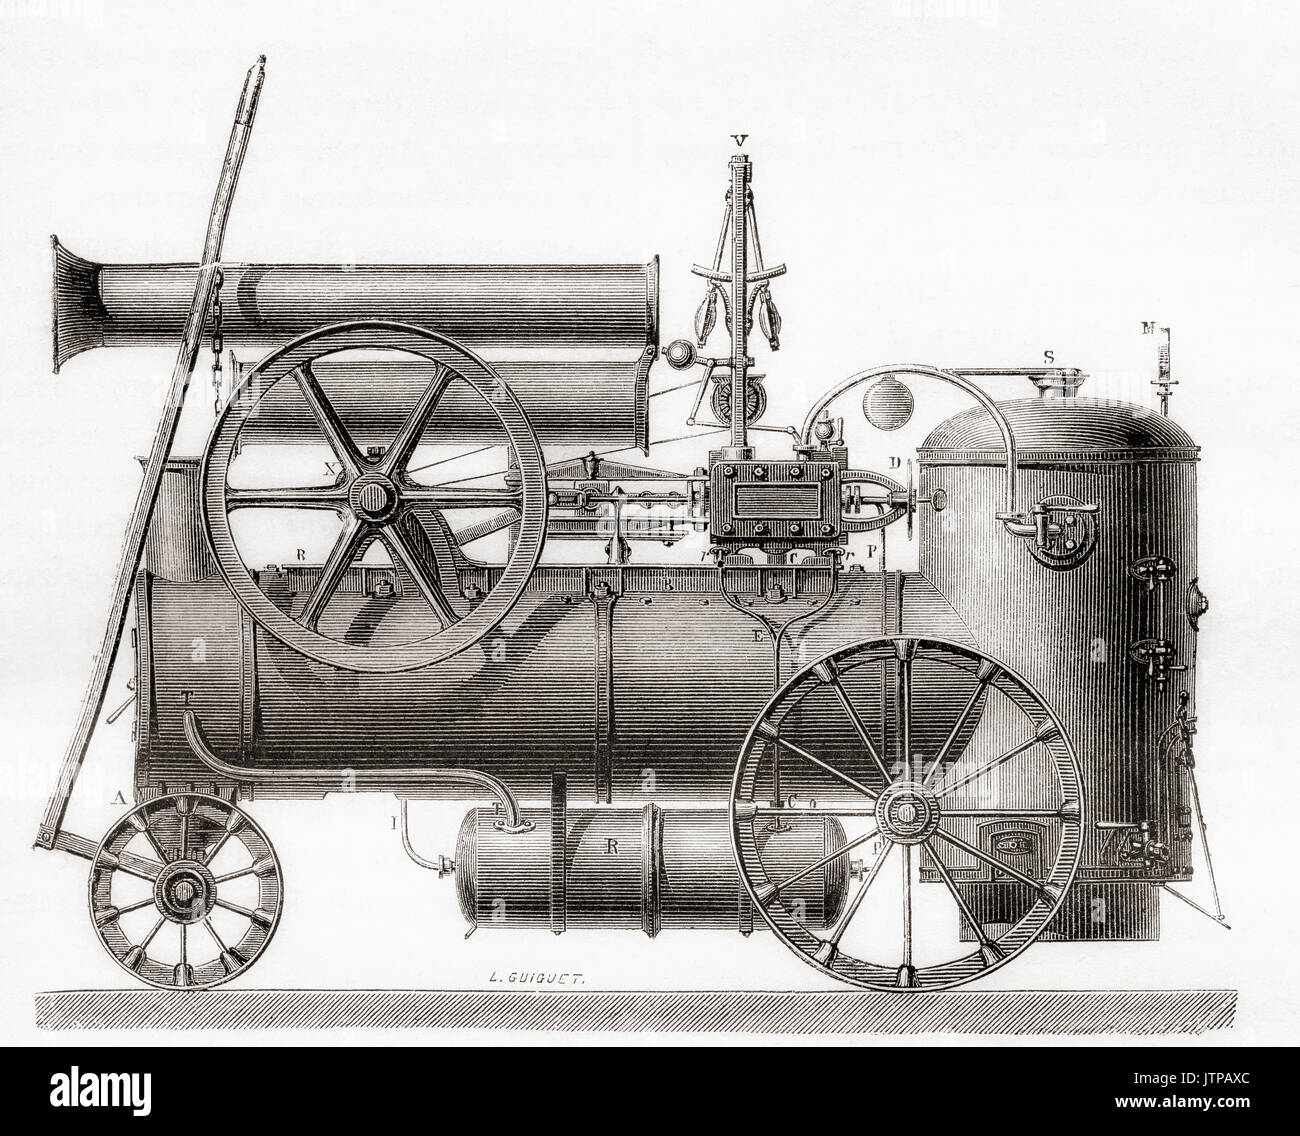 A portable steam engine built in France by the company M. Cail et Cie in the 19th century.  From Les Merveilles de la Science, published 1870. - Stock Image